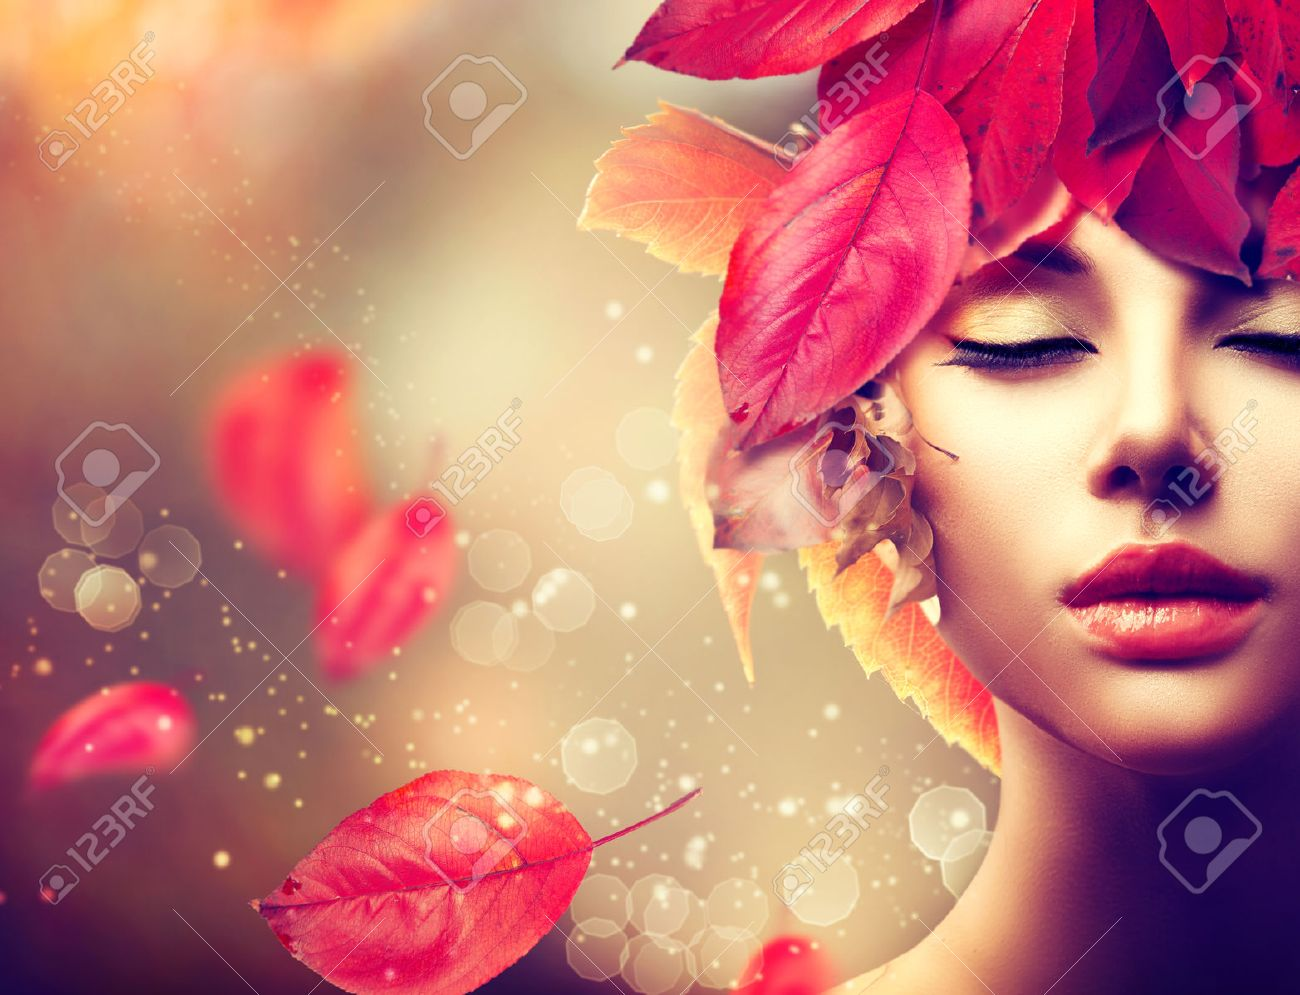 Autumn Woman. Fall. Girl with colourful autumn leaves hairstyle - 31807508